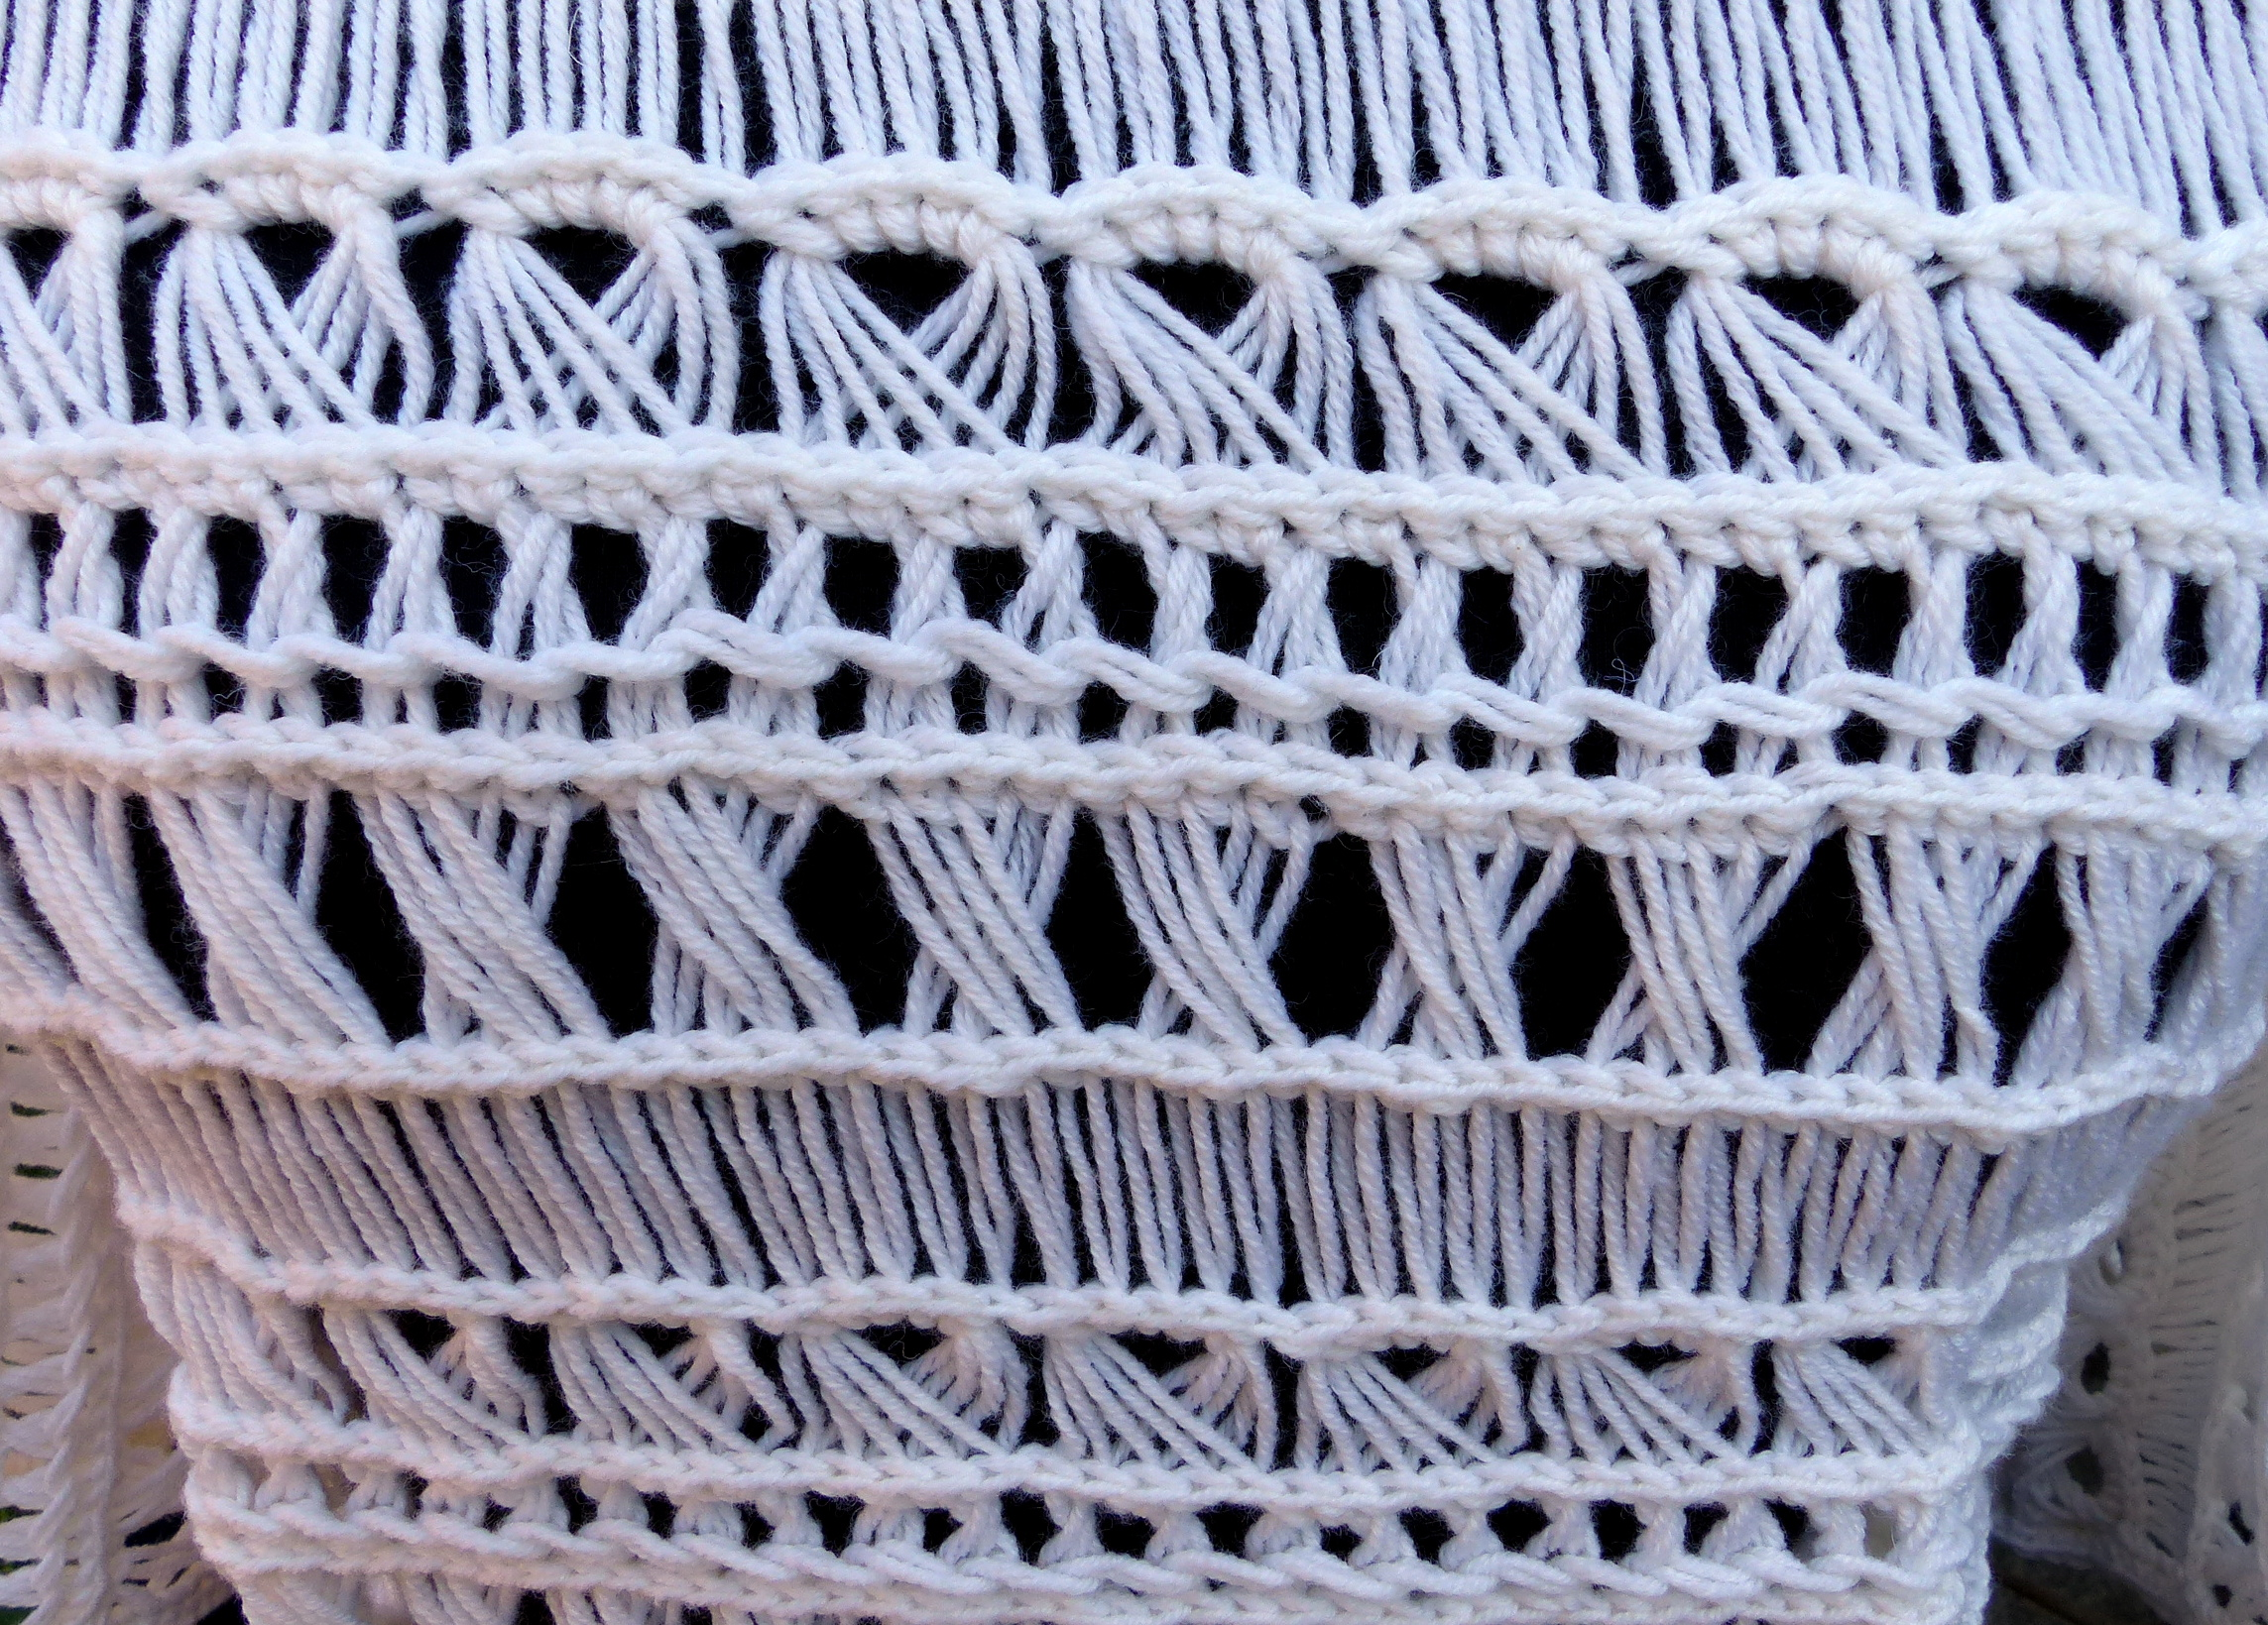 Fancy Broomstick Lace Stitch Videos | Make My Day Creative